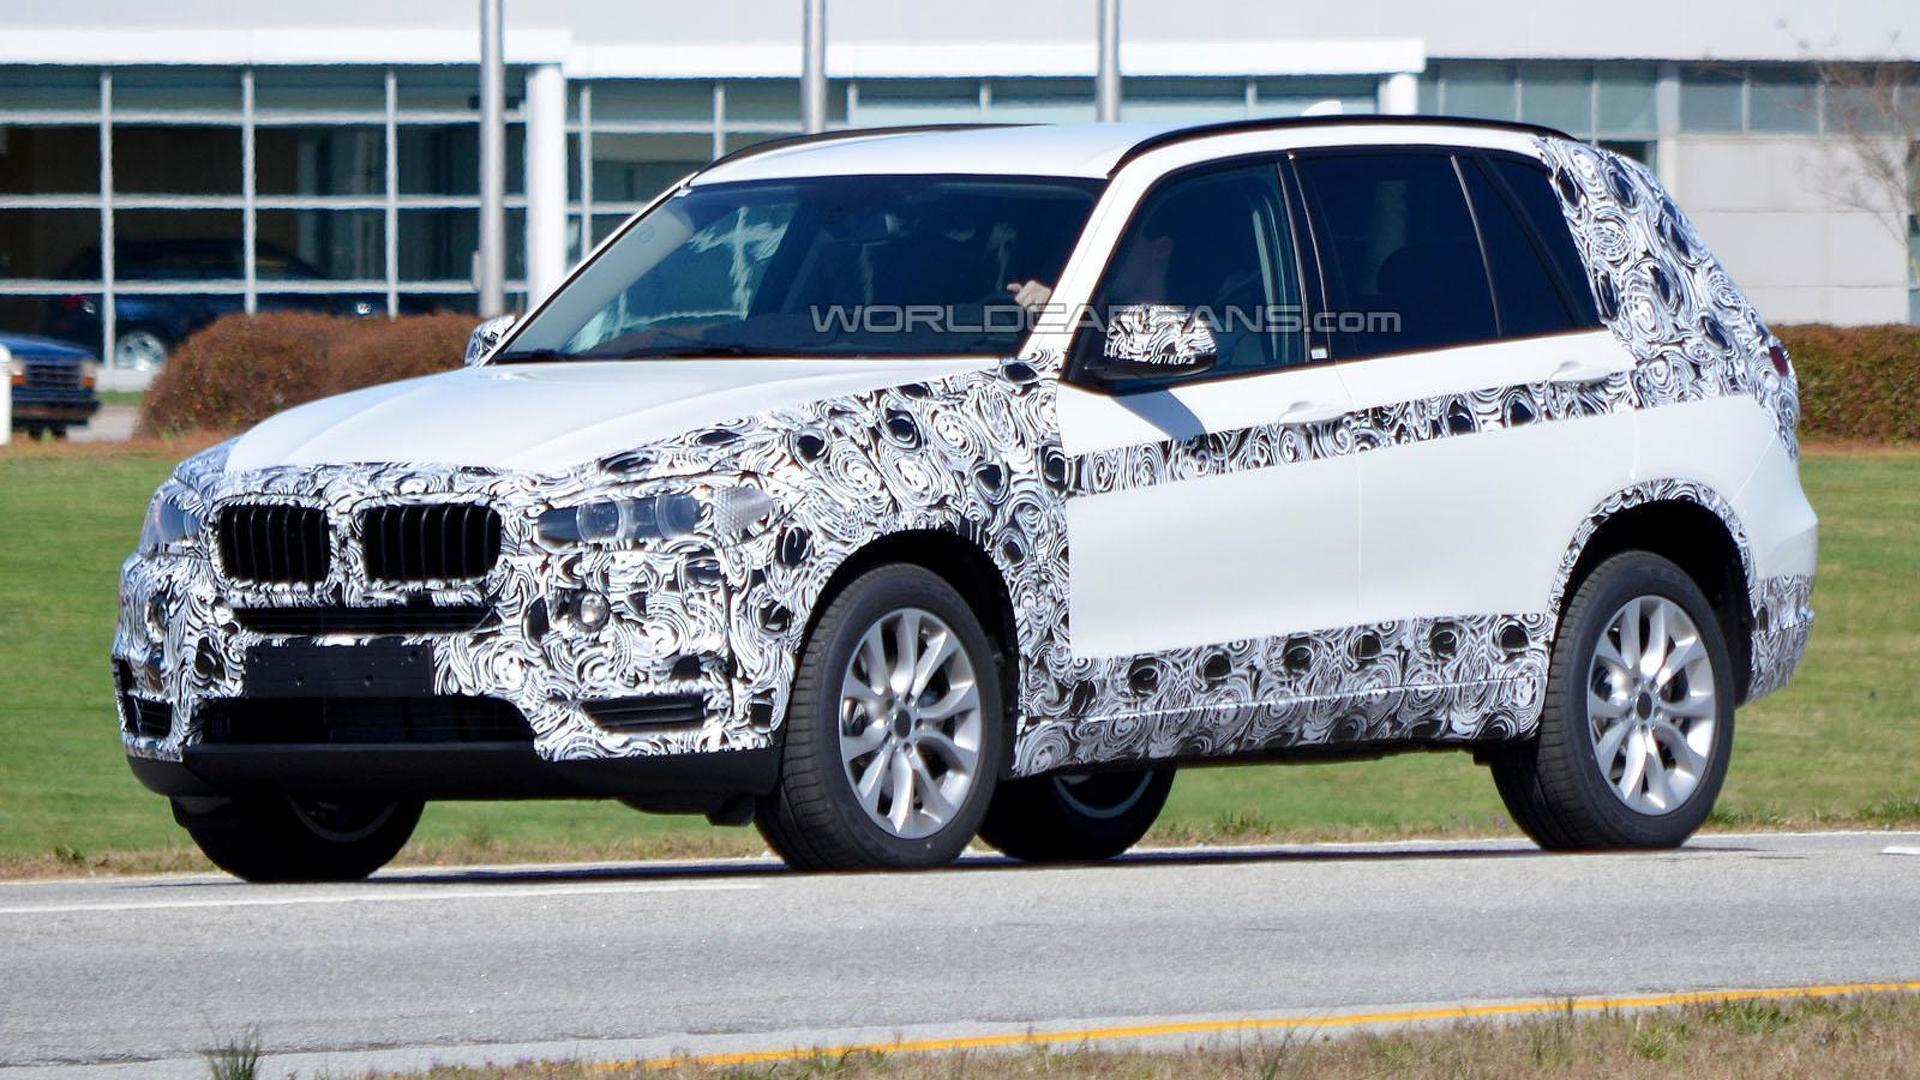 2014 BMW X5 spied with less disguise